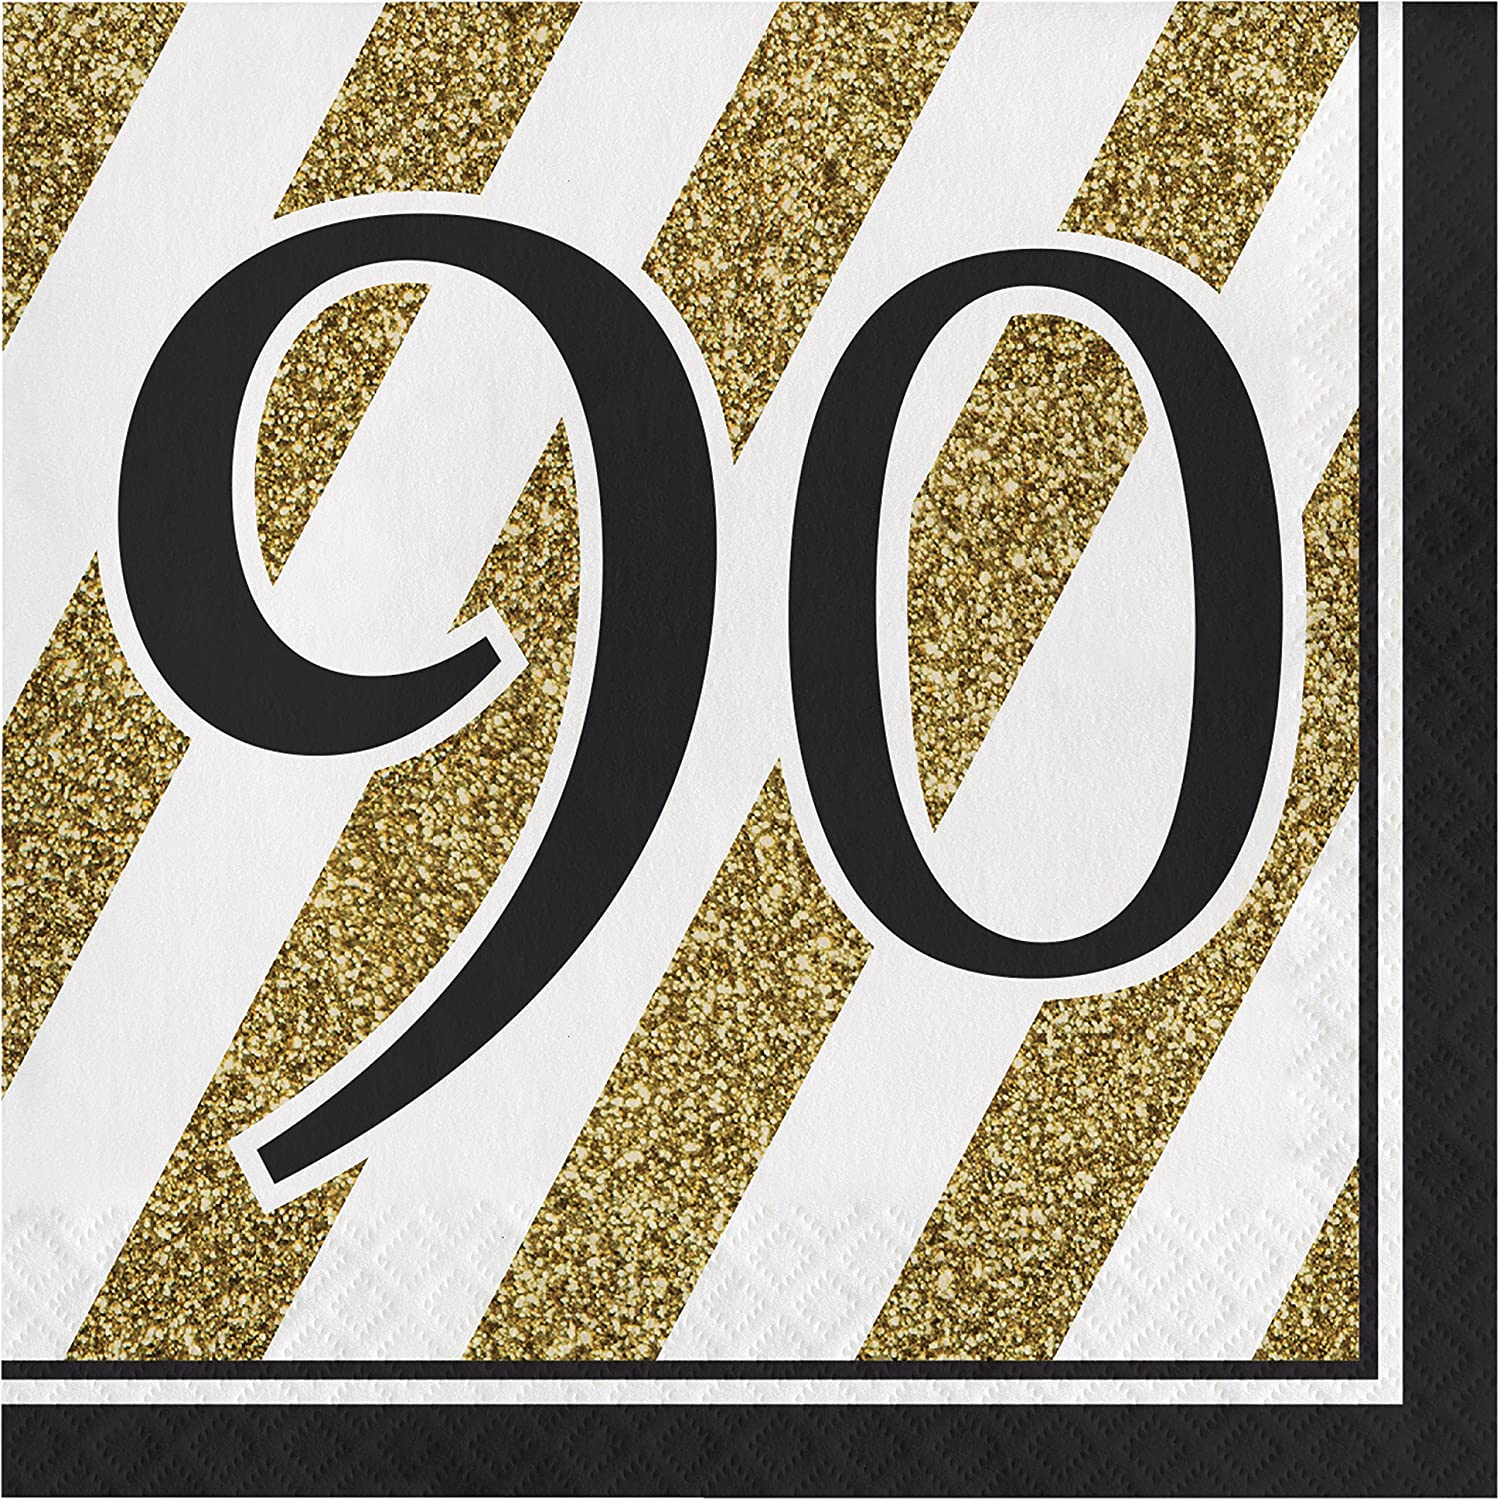 Black and Gold 90th Birthday Napkins, 48 Count supplier